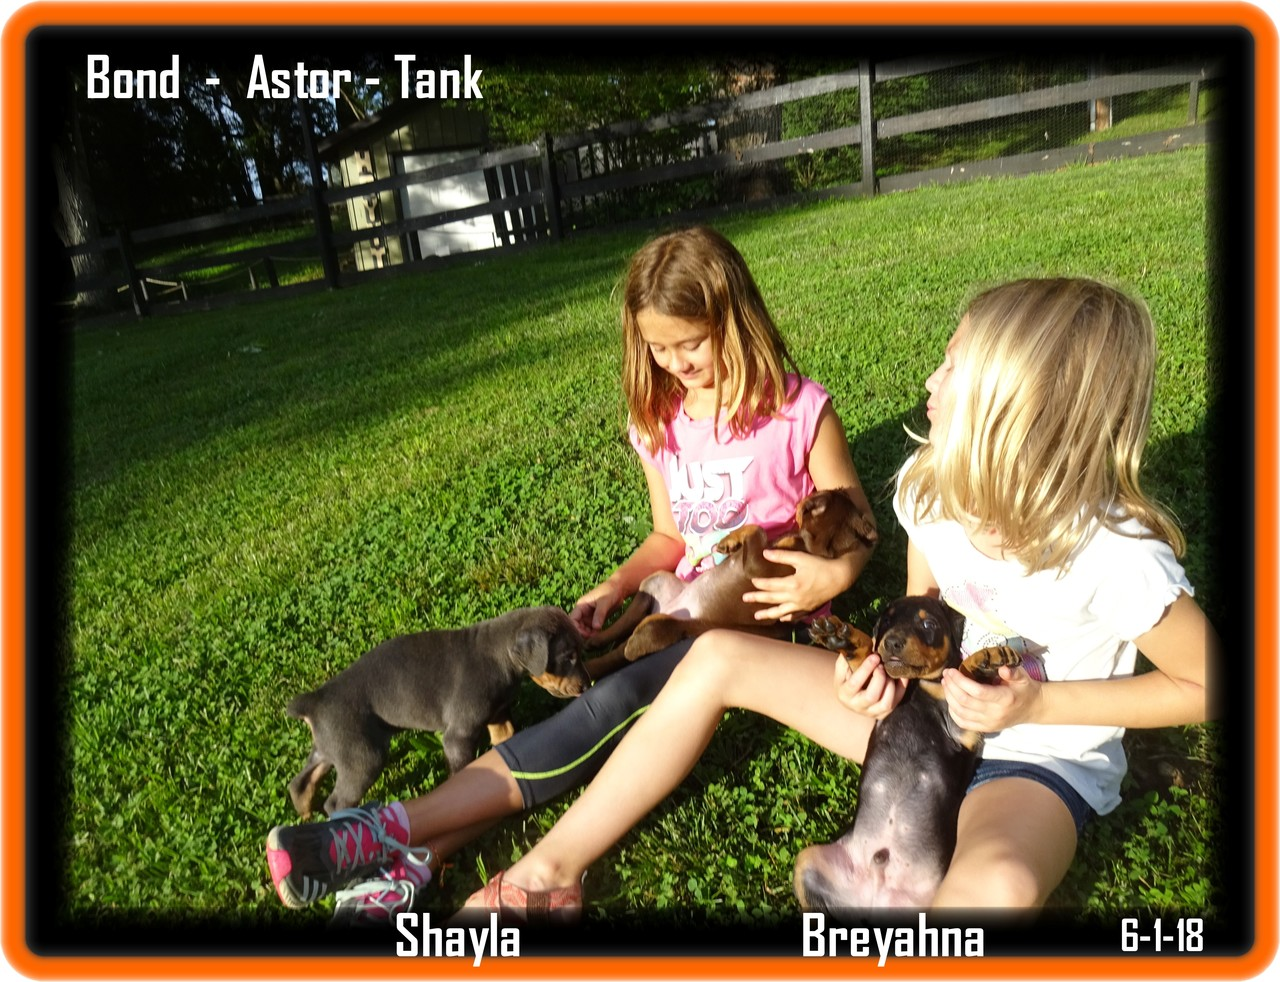 Bond - Astor - Tank  out for time with the girls Shayla & Breyahna  in the park ( our front yard) .